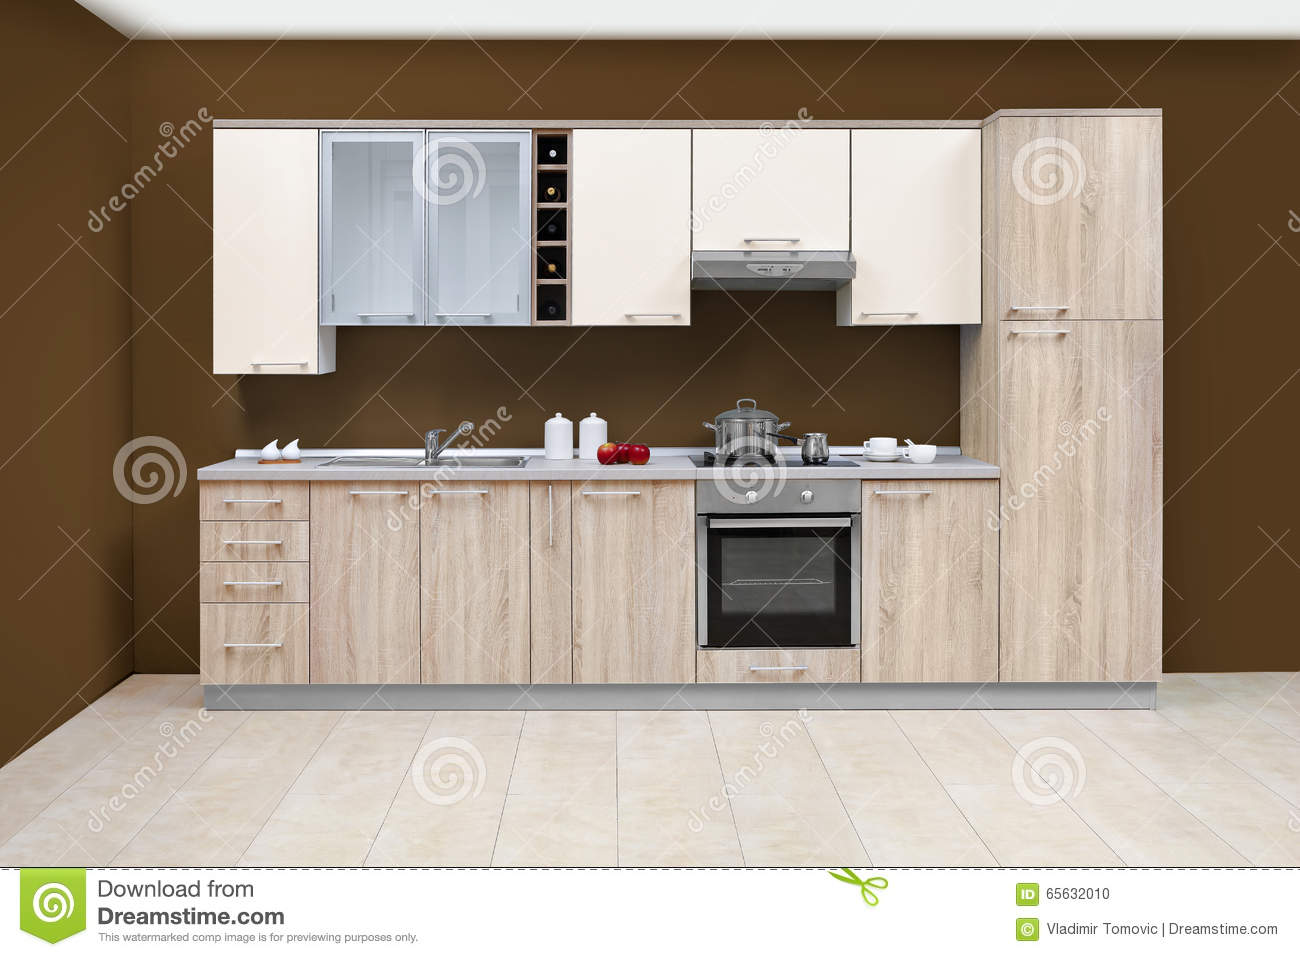 Cuisine Moderne Meubles En Bois Simple Et Propre Photo Stock